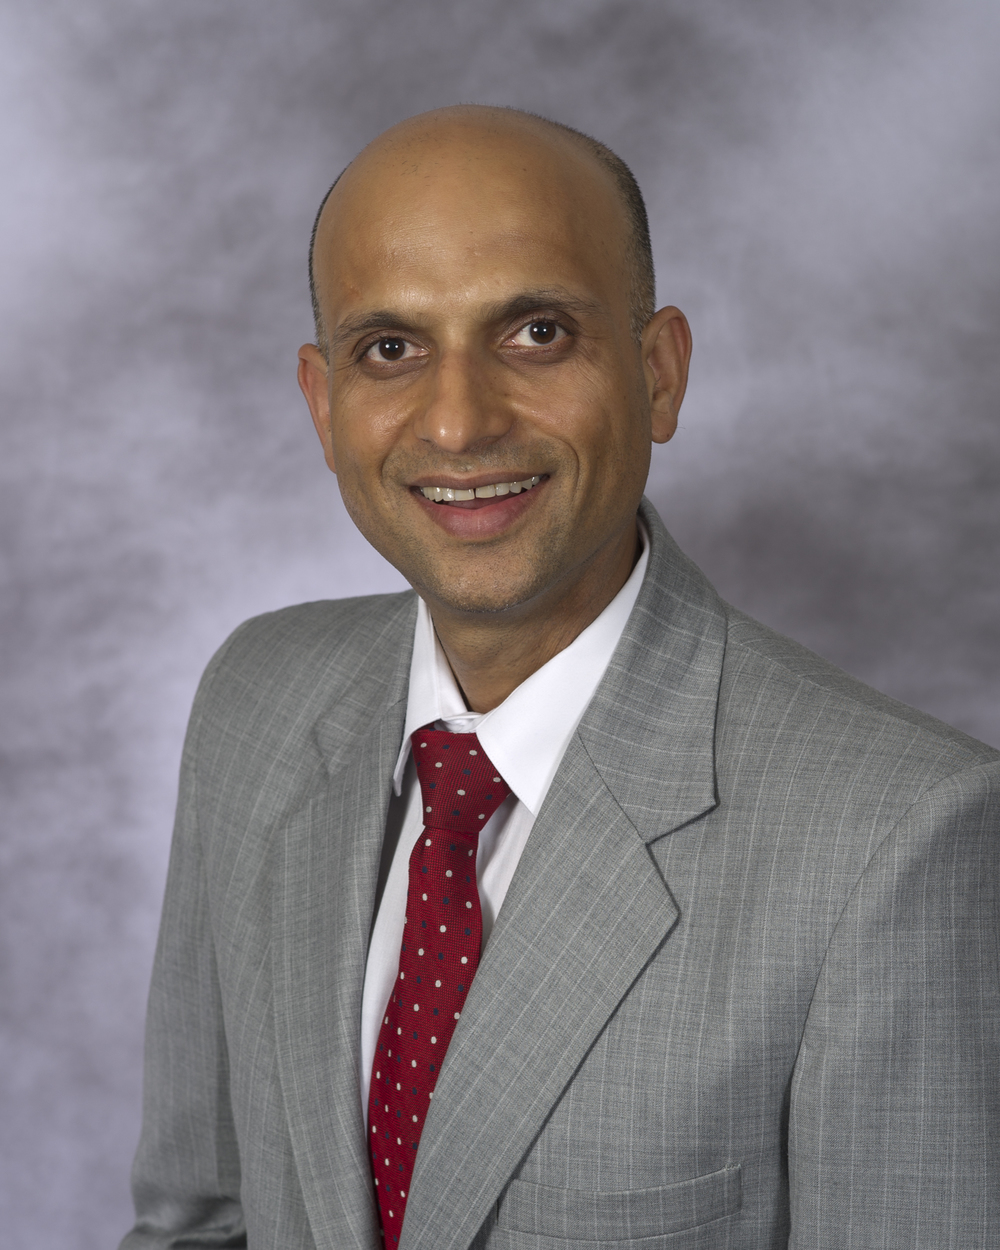 r anand gupta, MD  Attending physician